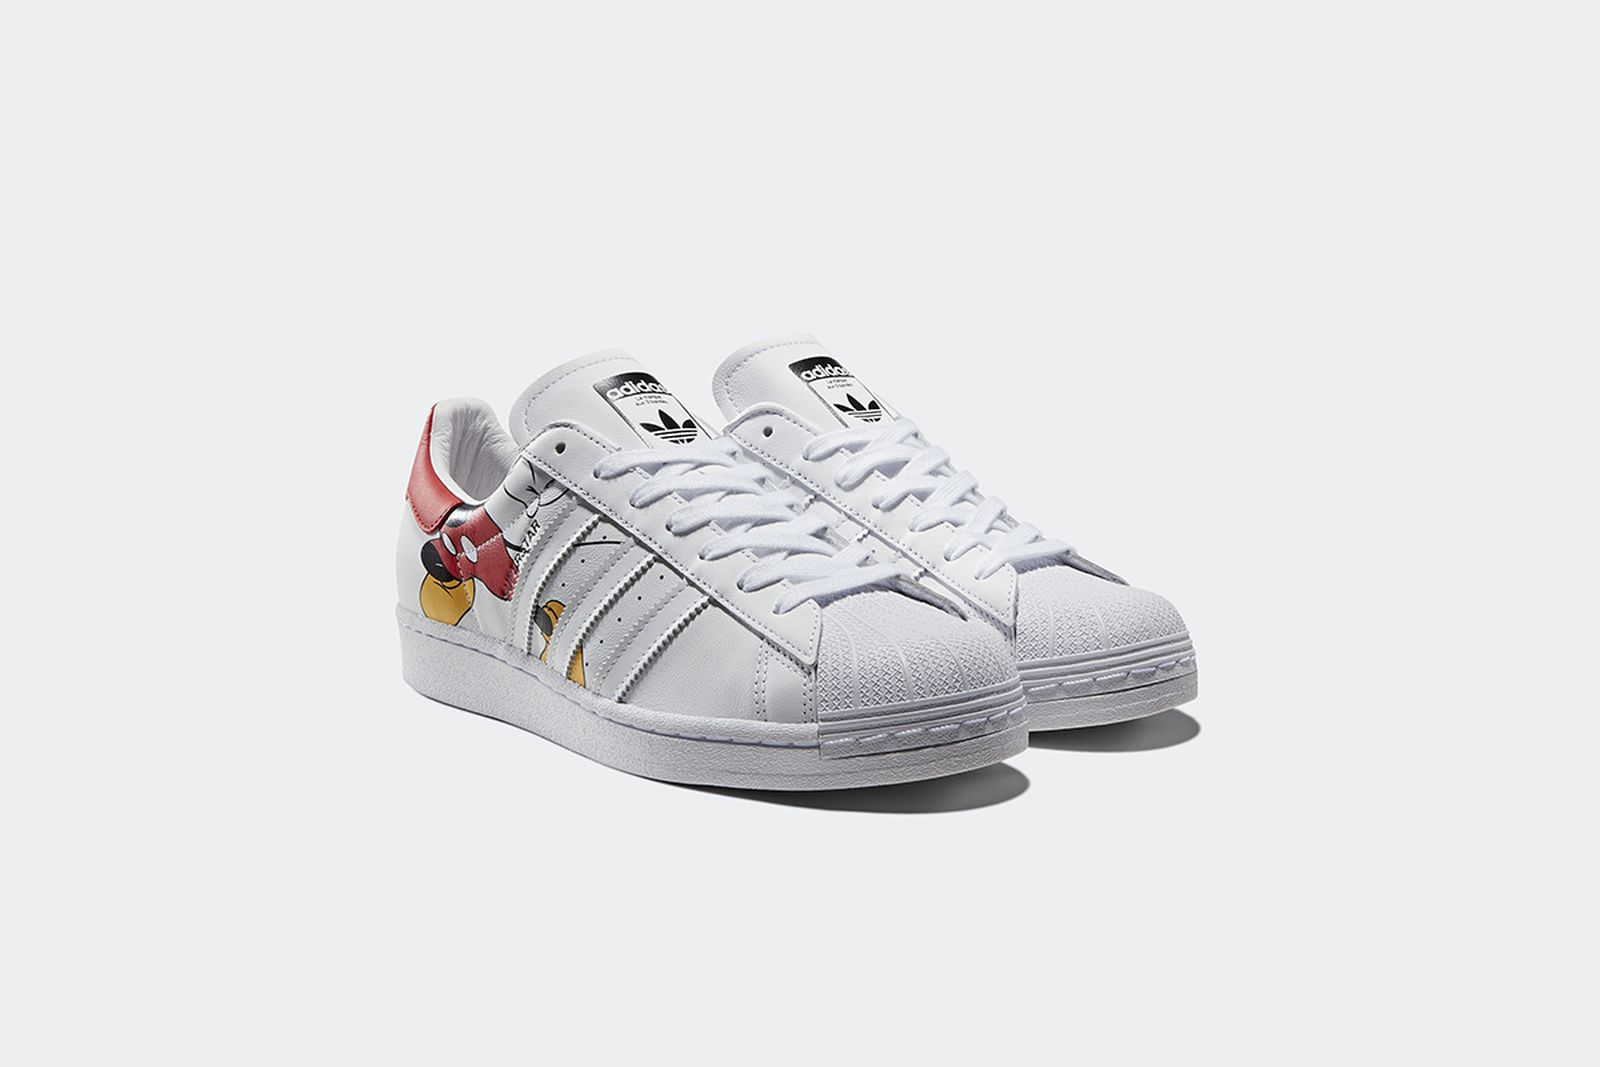 adidas-cny-mickey-mouse-pack-release-date-price-04